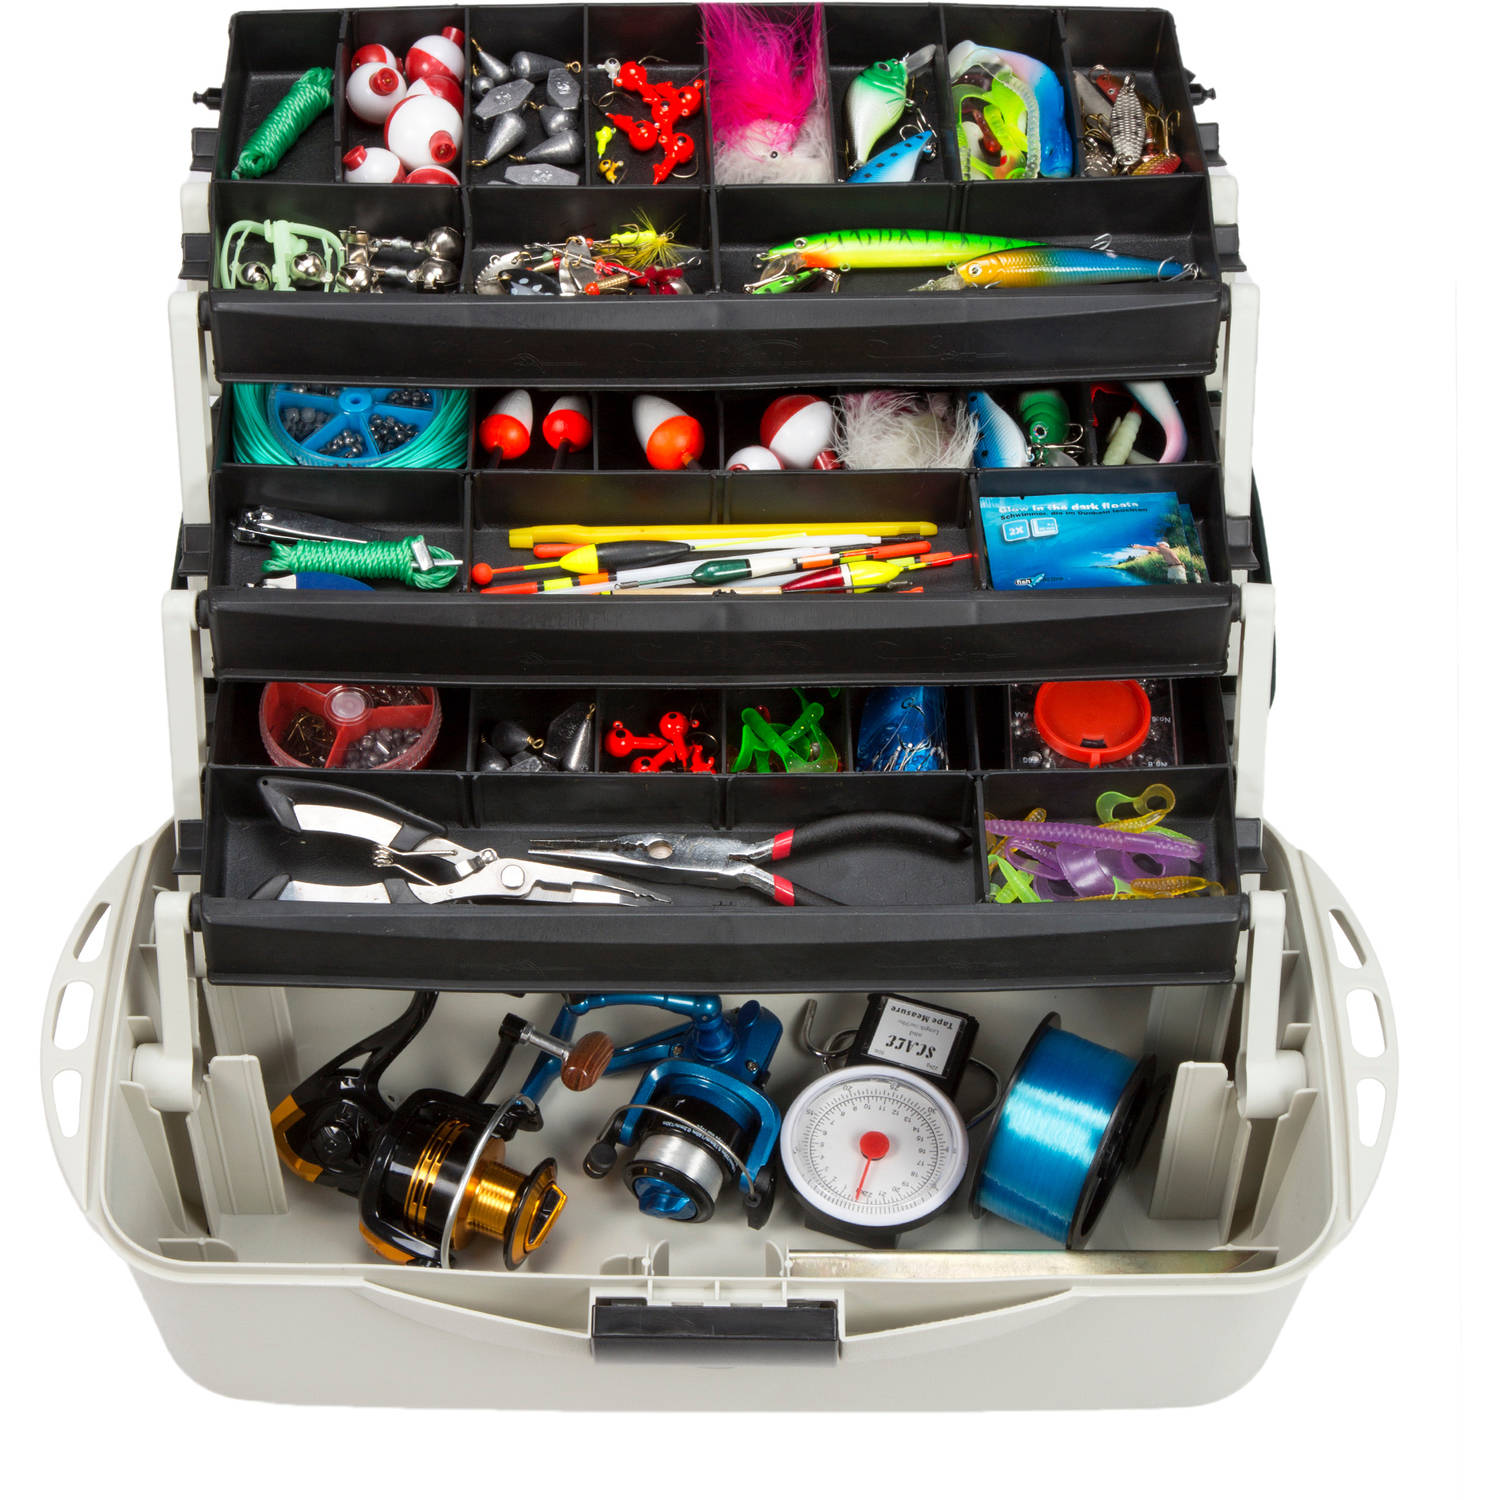 3-Tray Fishing Tackle Box Craft Tool Chest and Art Supply Organizer � 18 Inch by Wakeman Outdoors by Trademark Global LLC